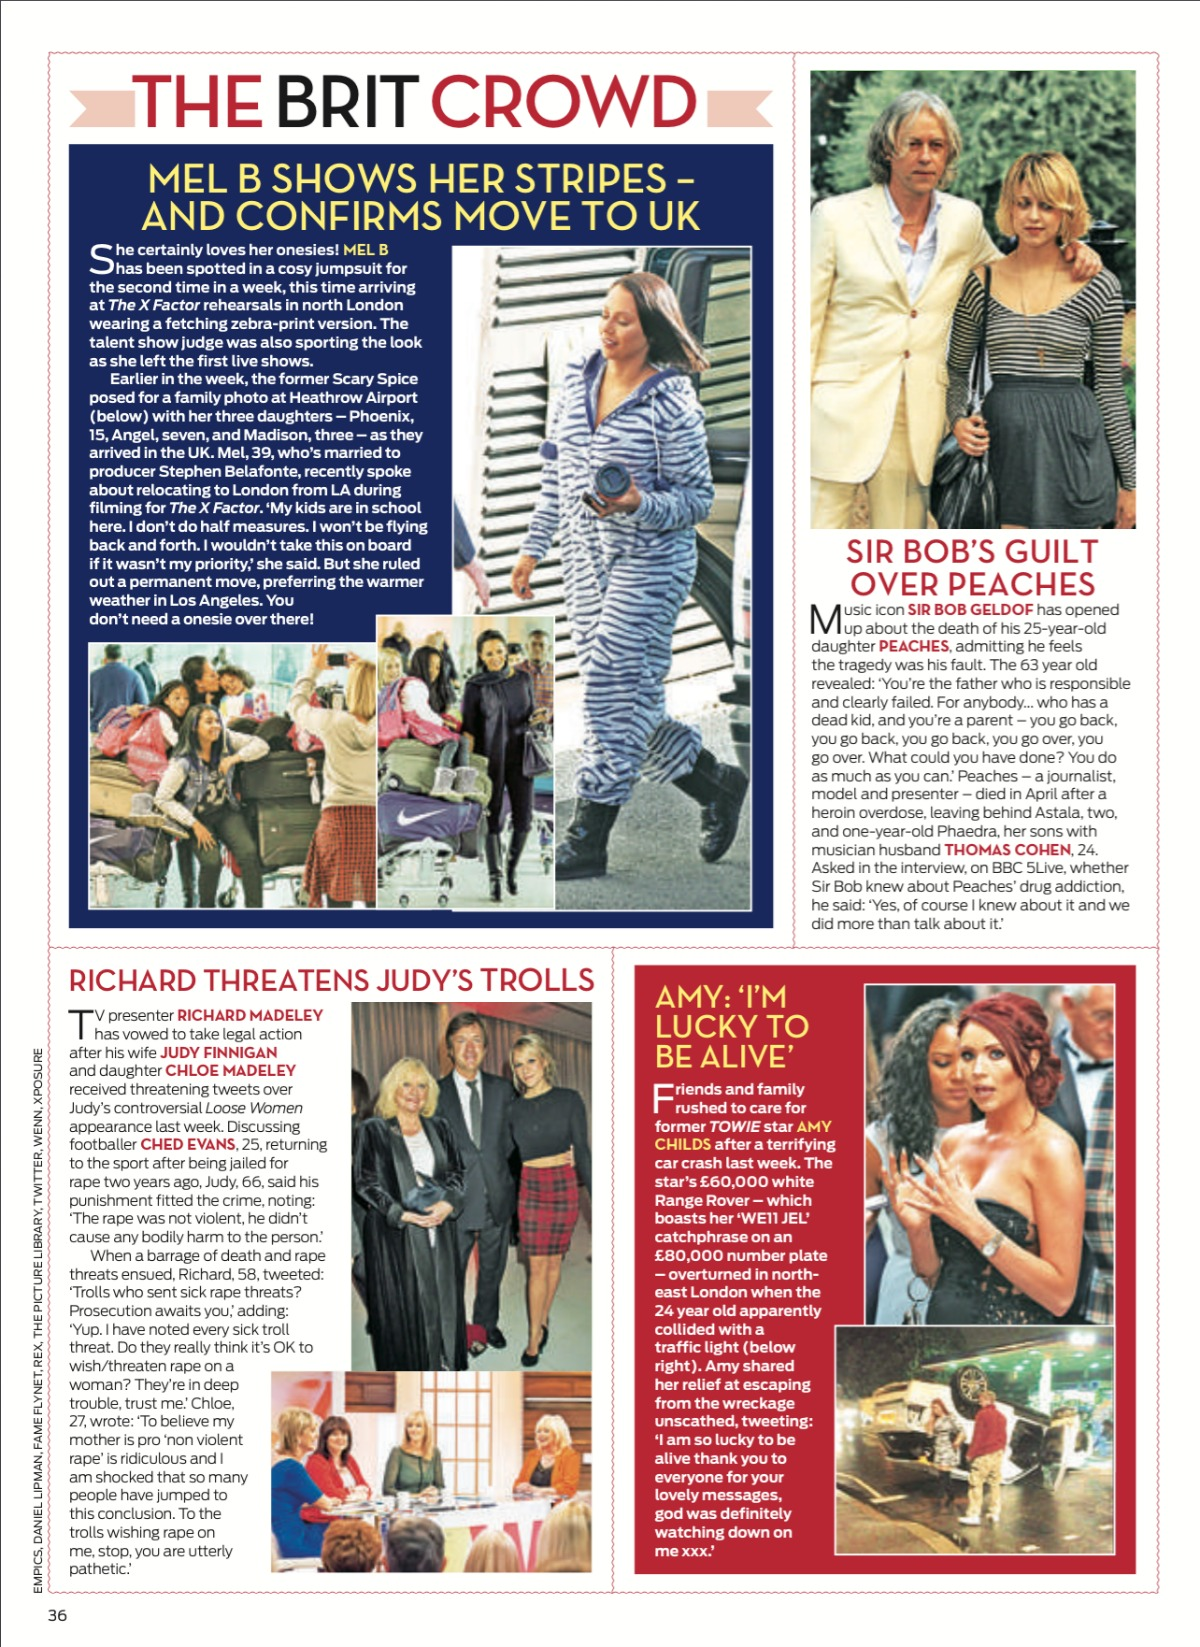 OK! Magazine Brit Crowd 2